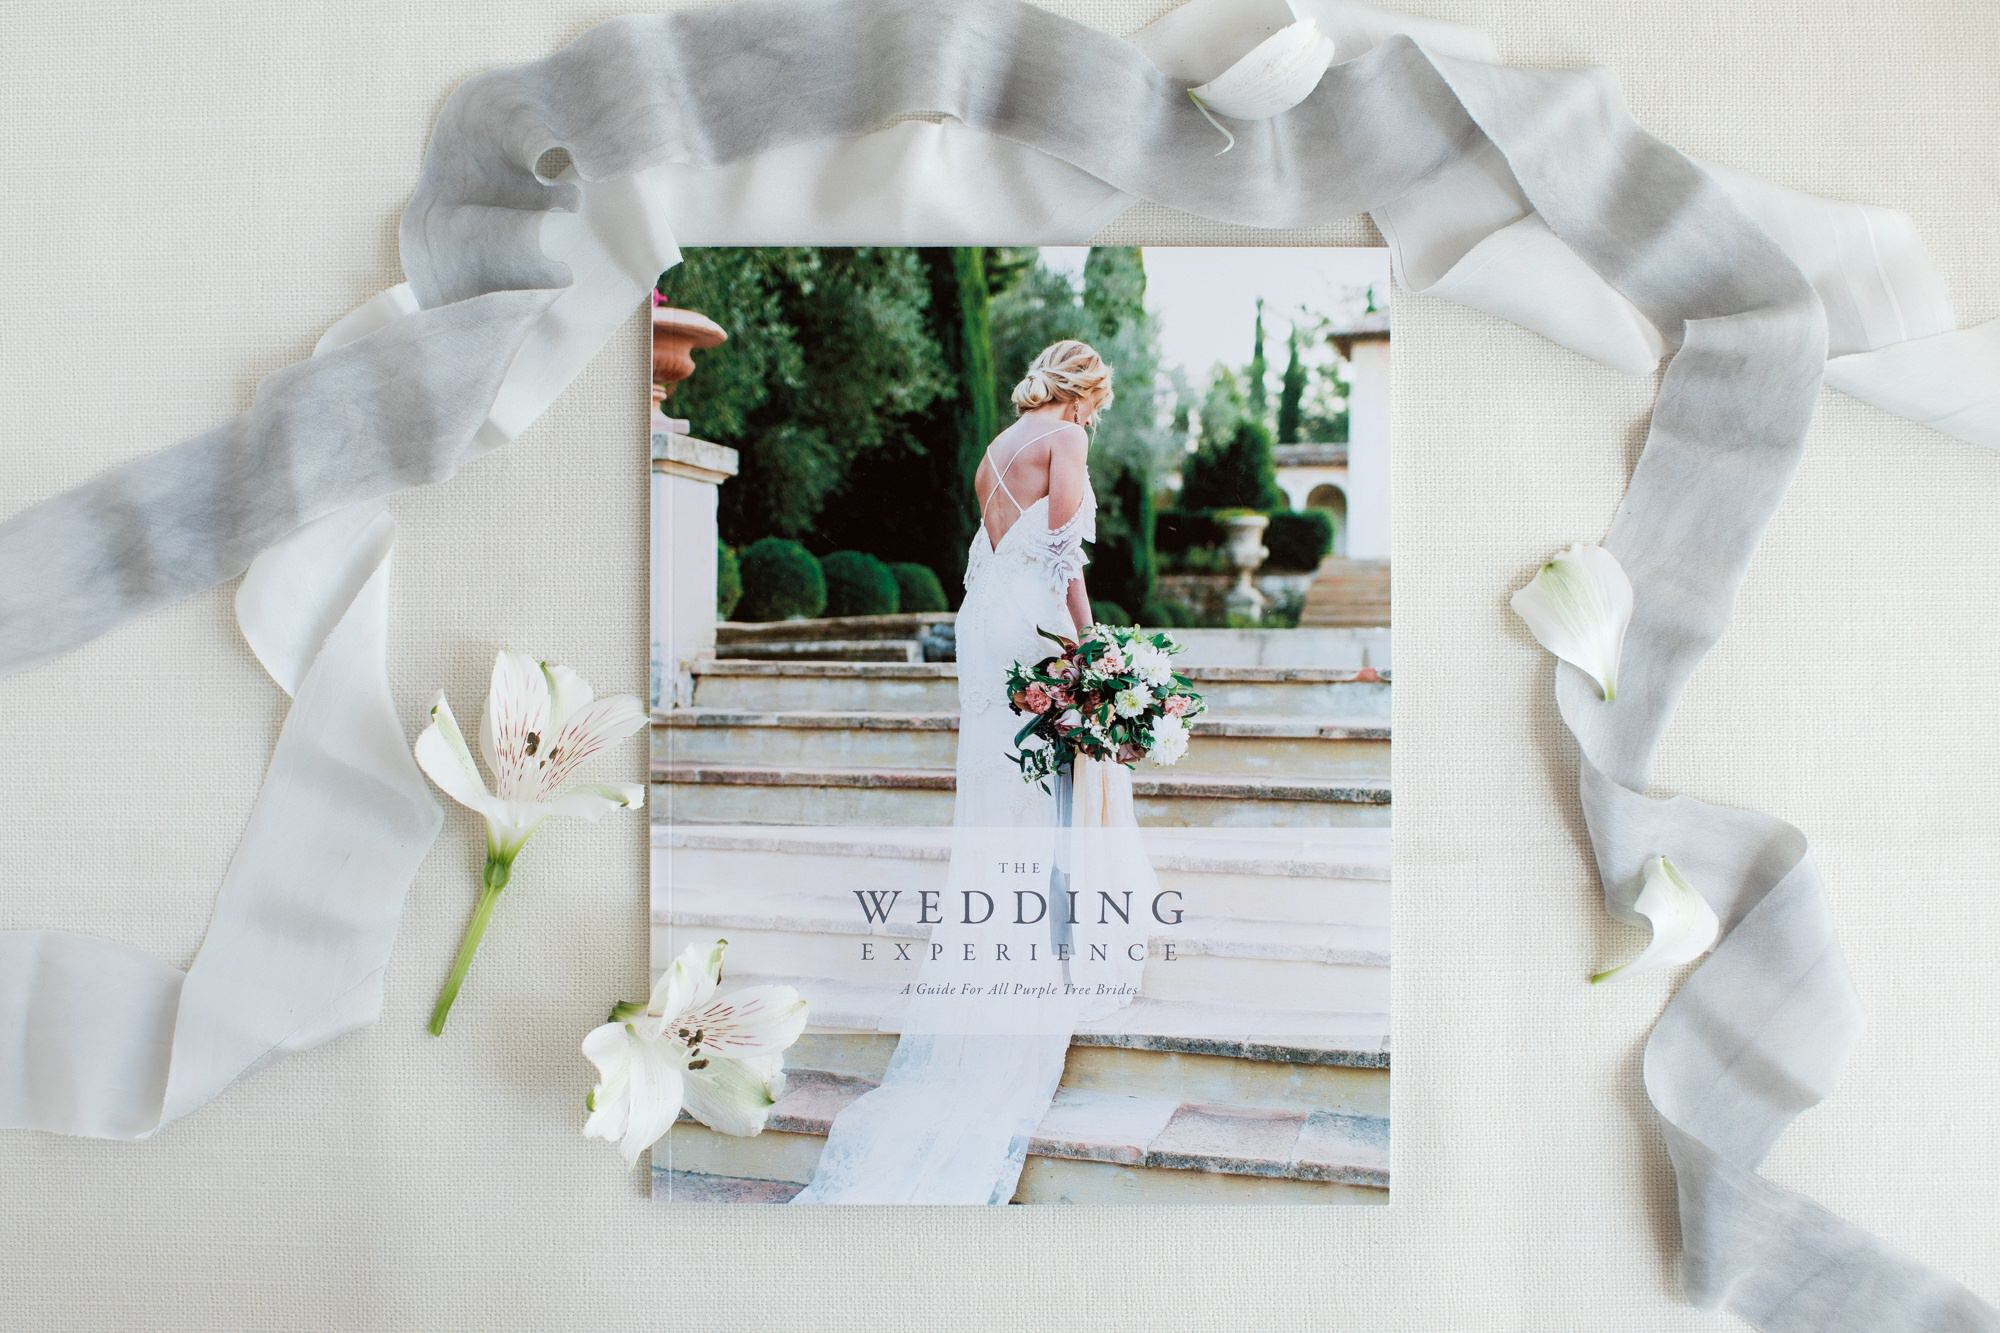 Wedding Experience Magazine